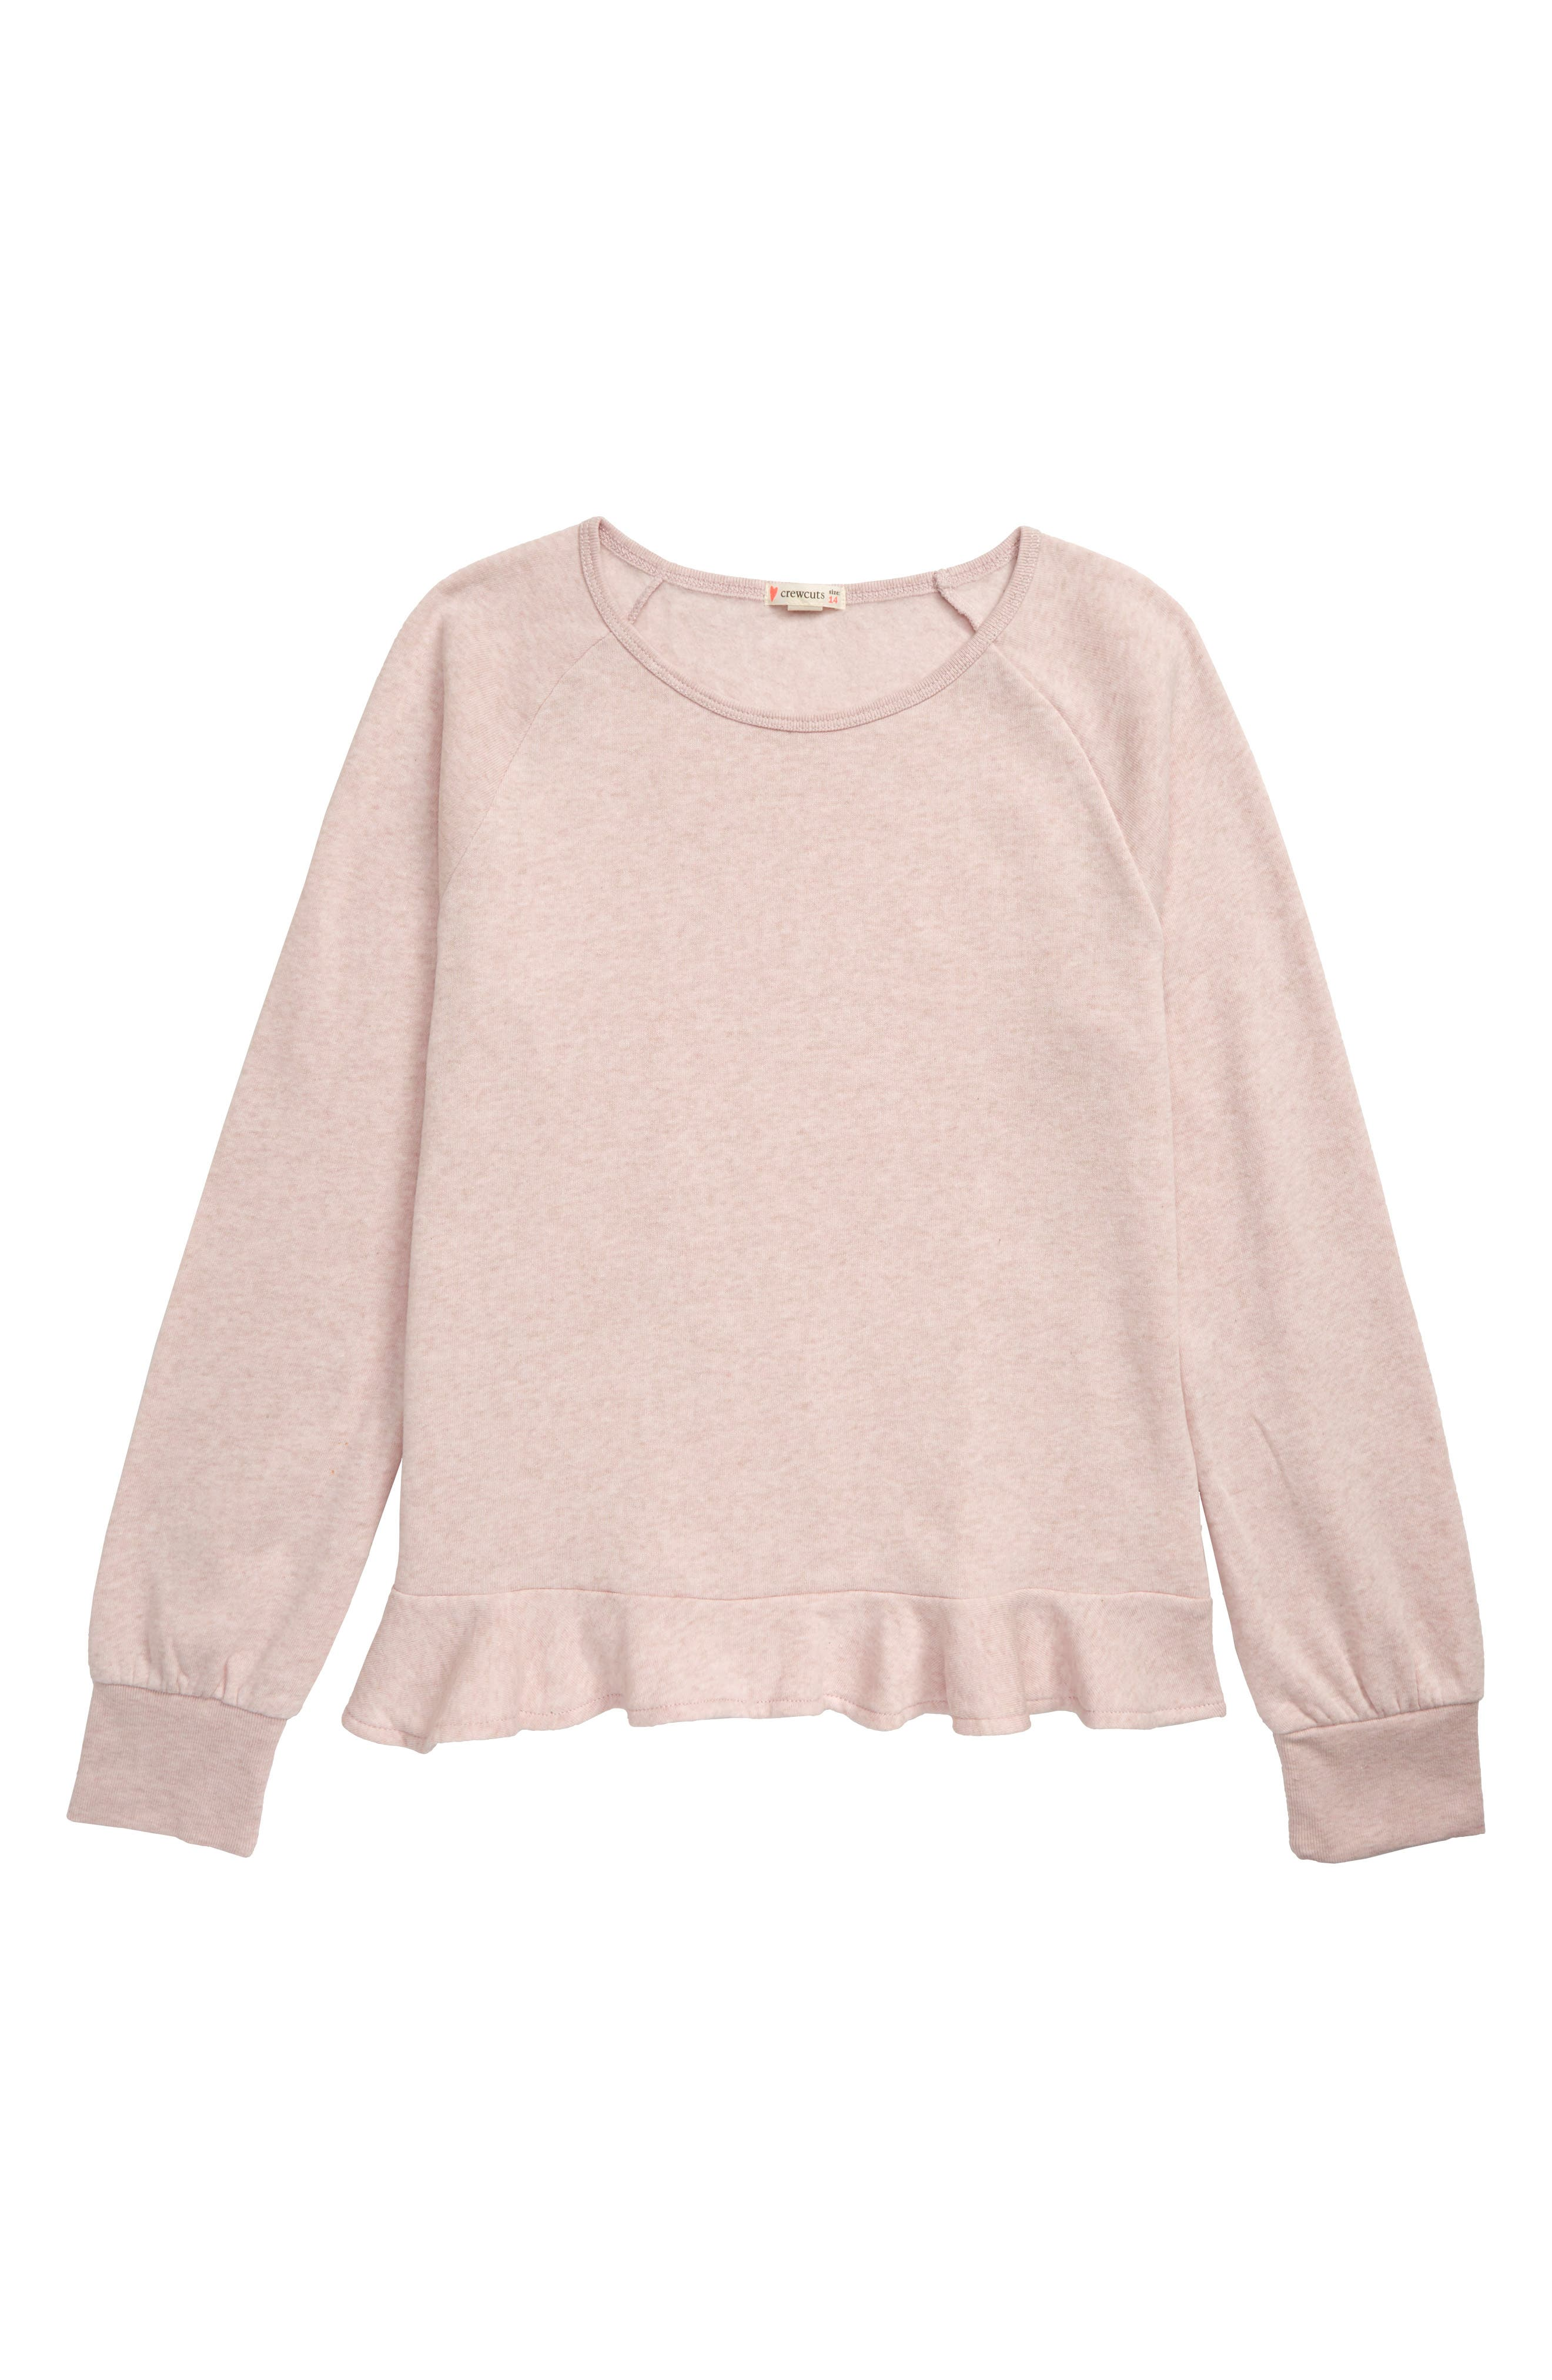 Toddler Girls Crewcuts By Jcrew Ruffle Trimmed Sweatshirt Size 2T  Pink